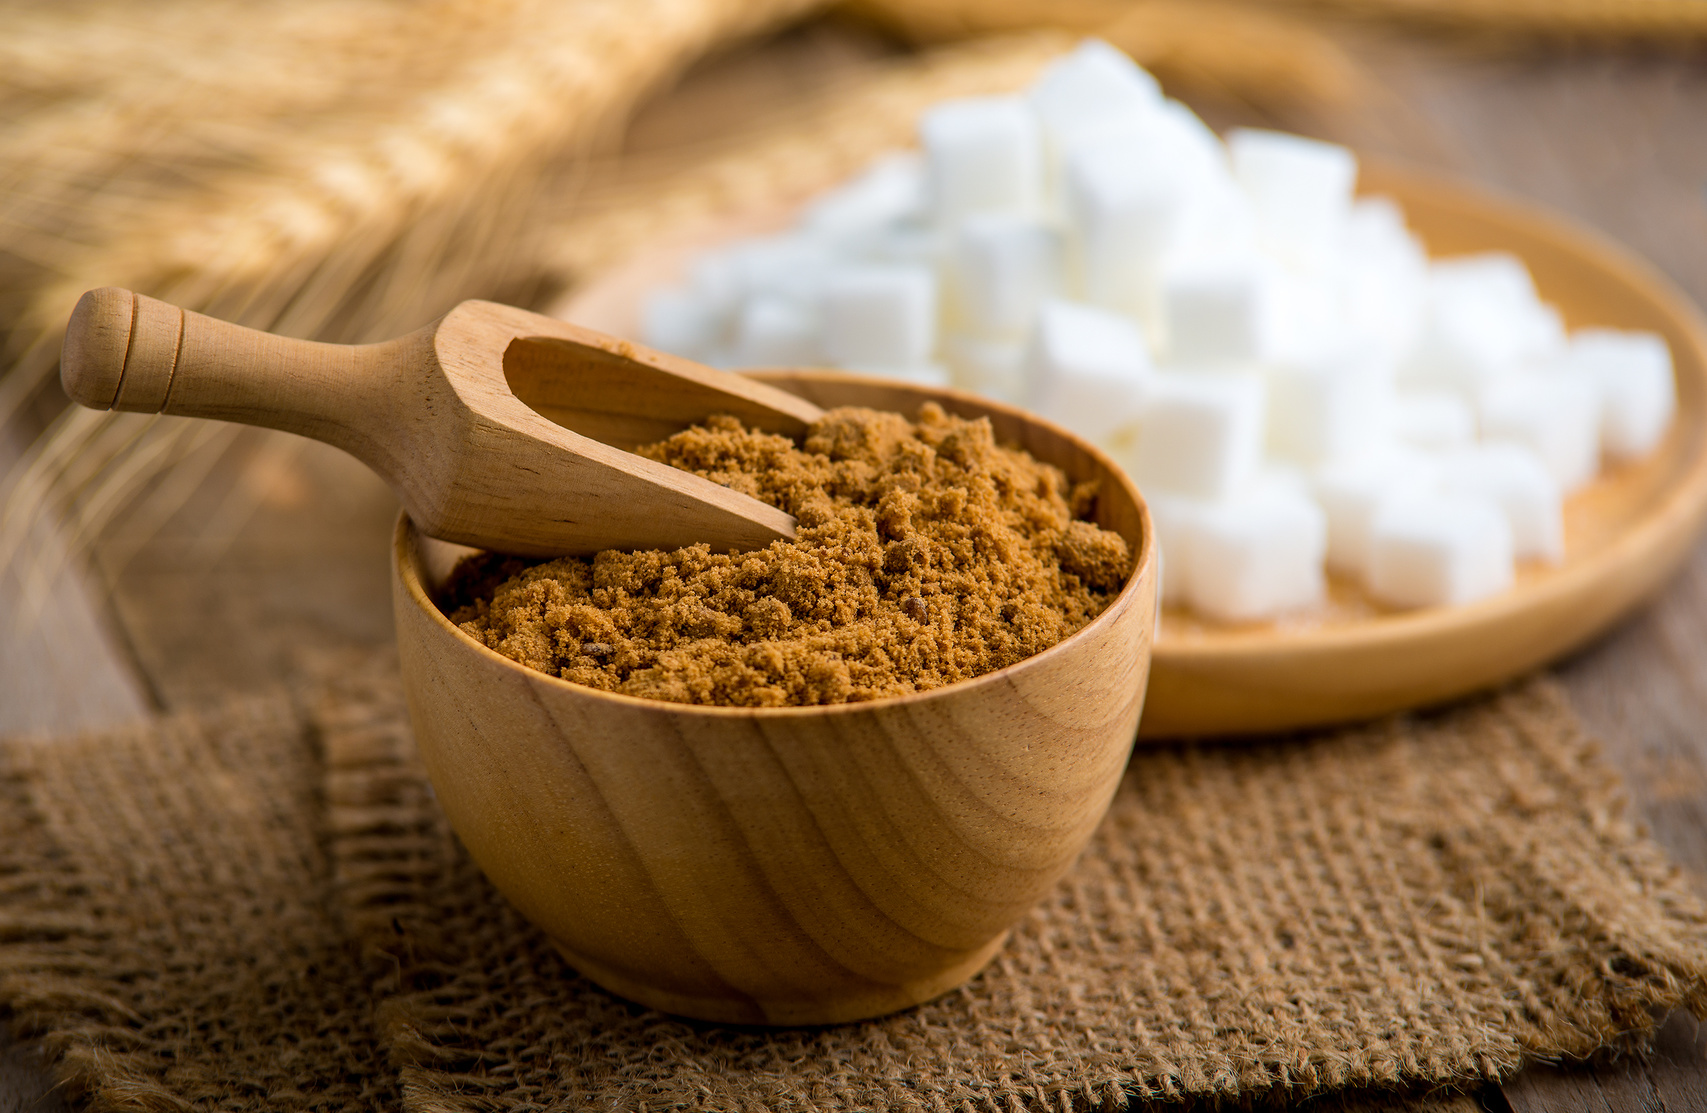 coconut palm sugar against an out of focus